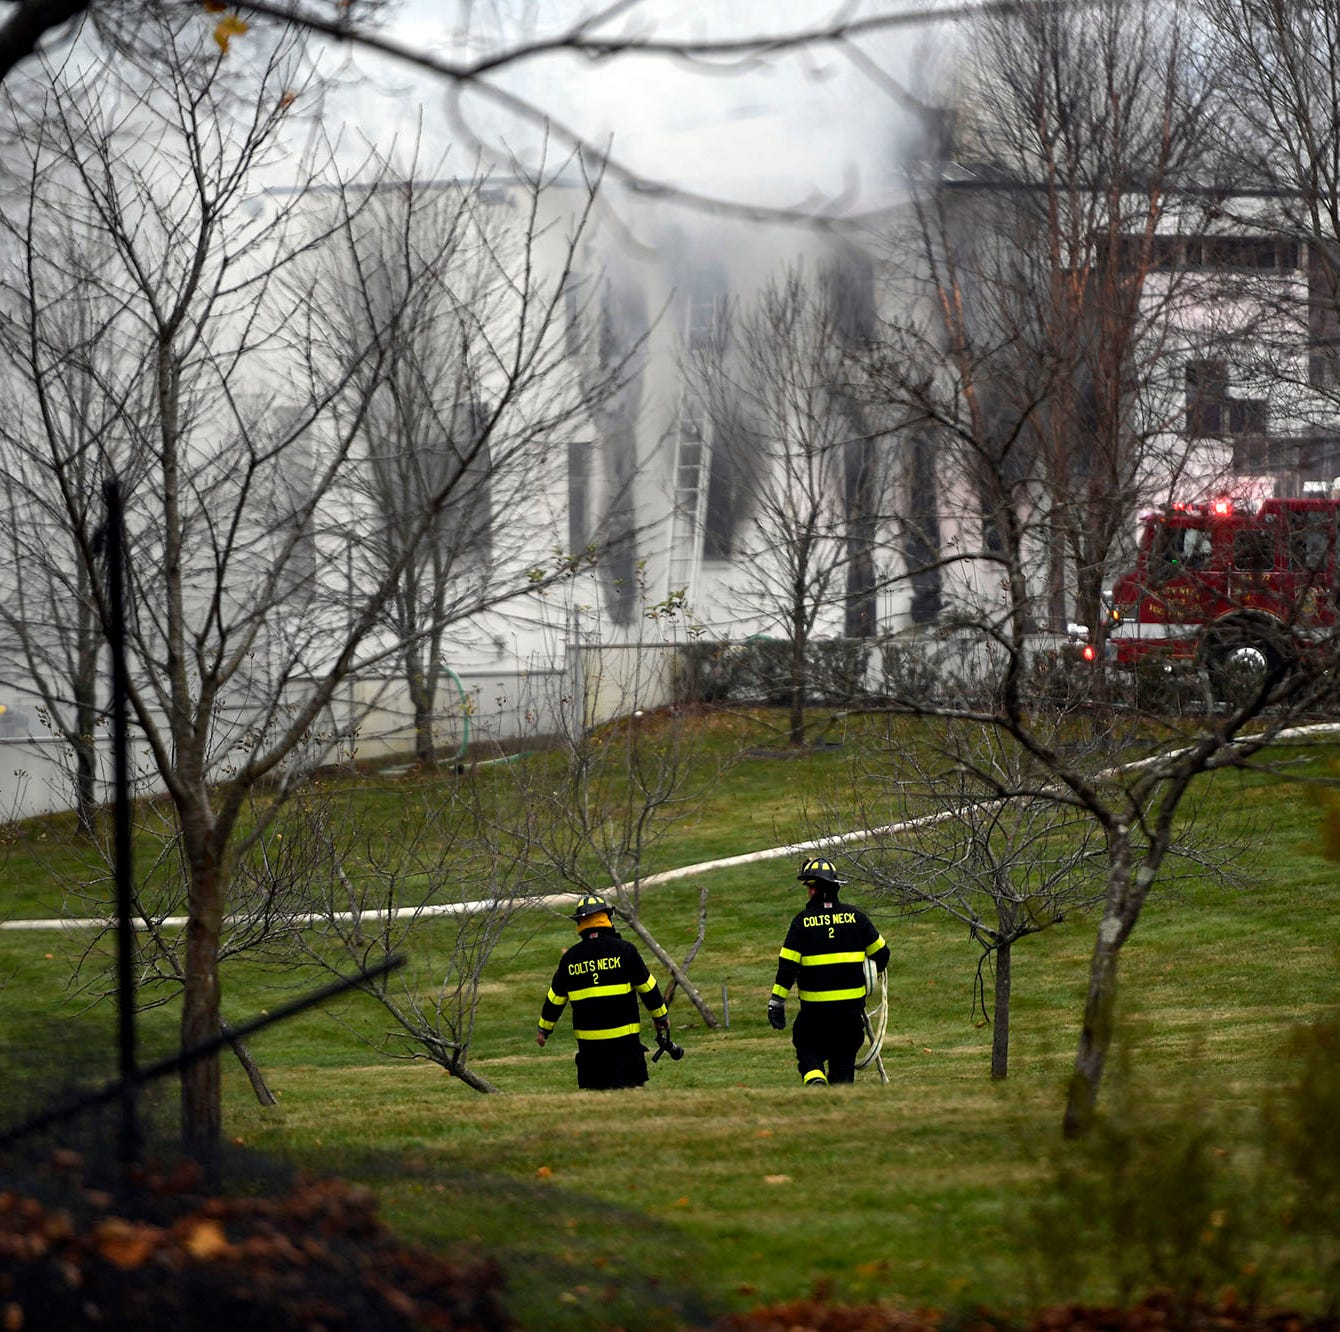 Colts Neck fire: 2 adults, 2 kids dead in arson blaze at mansion